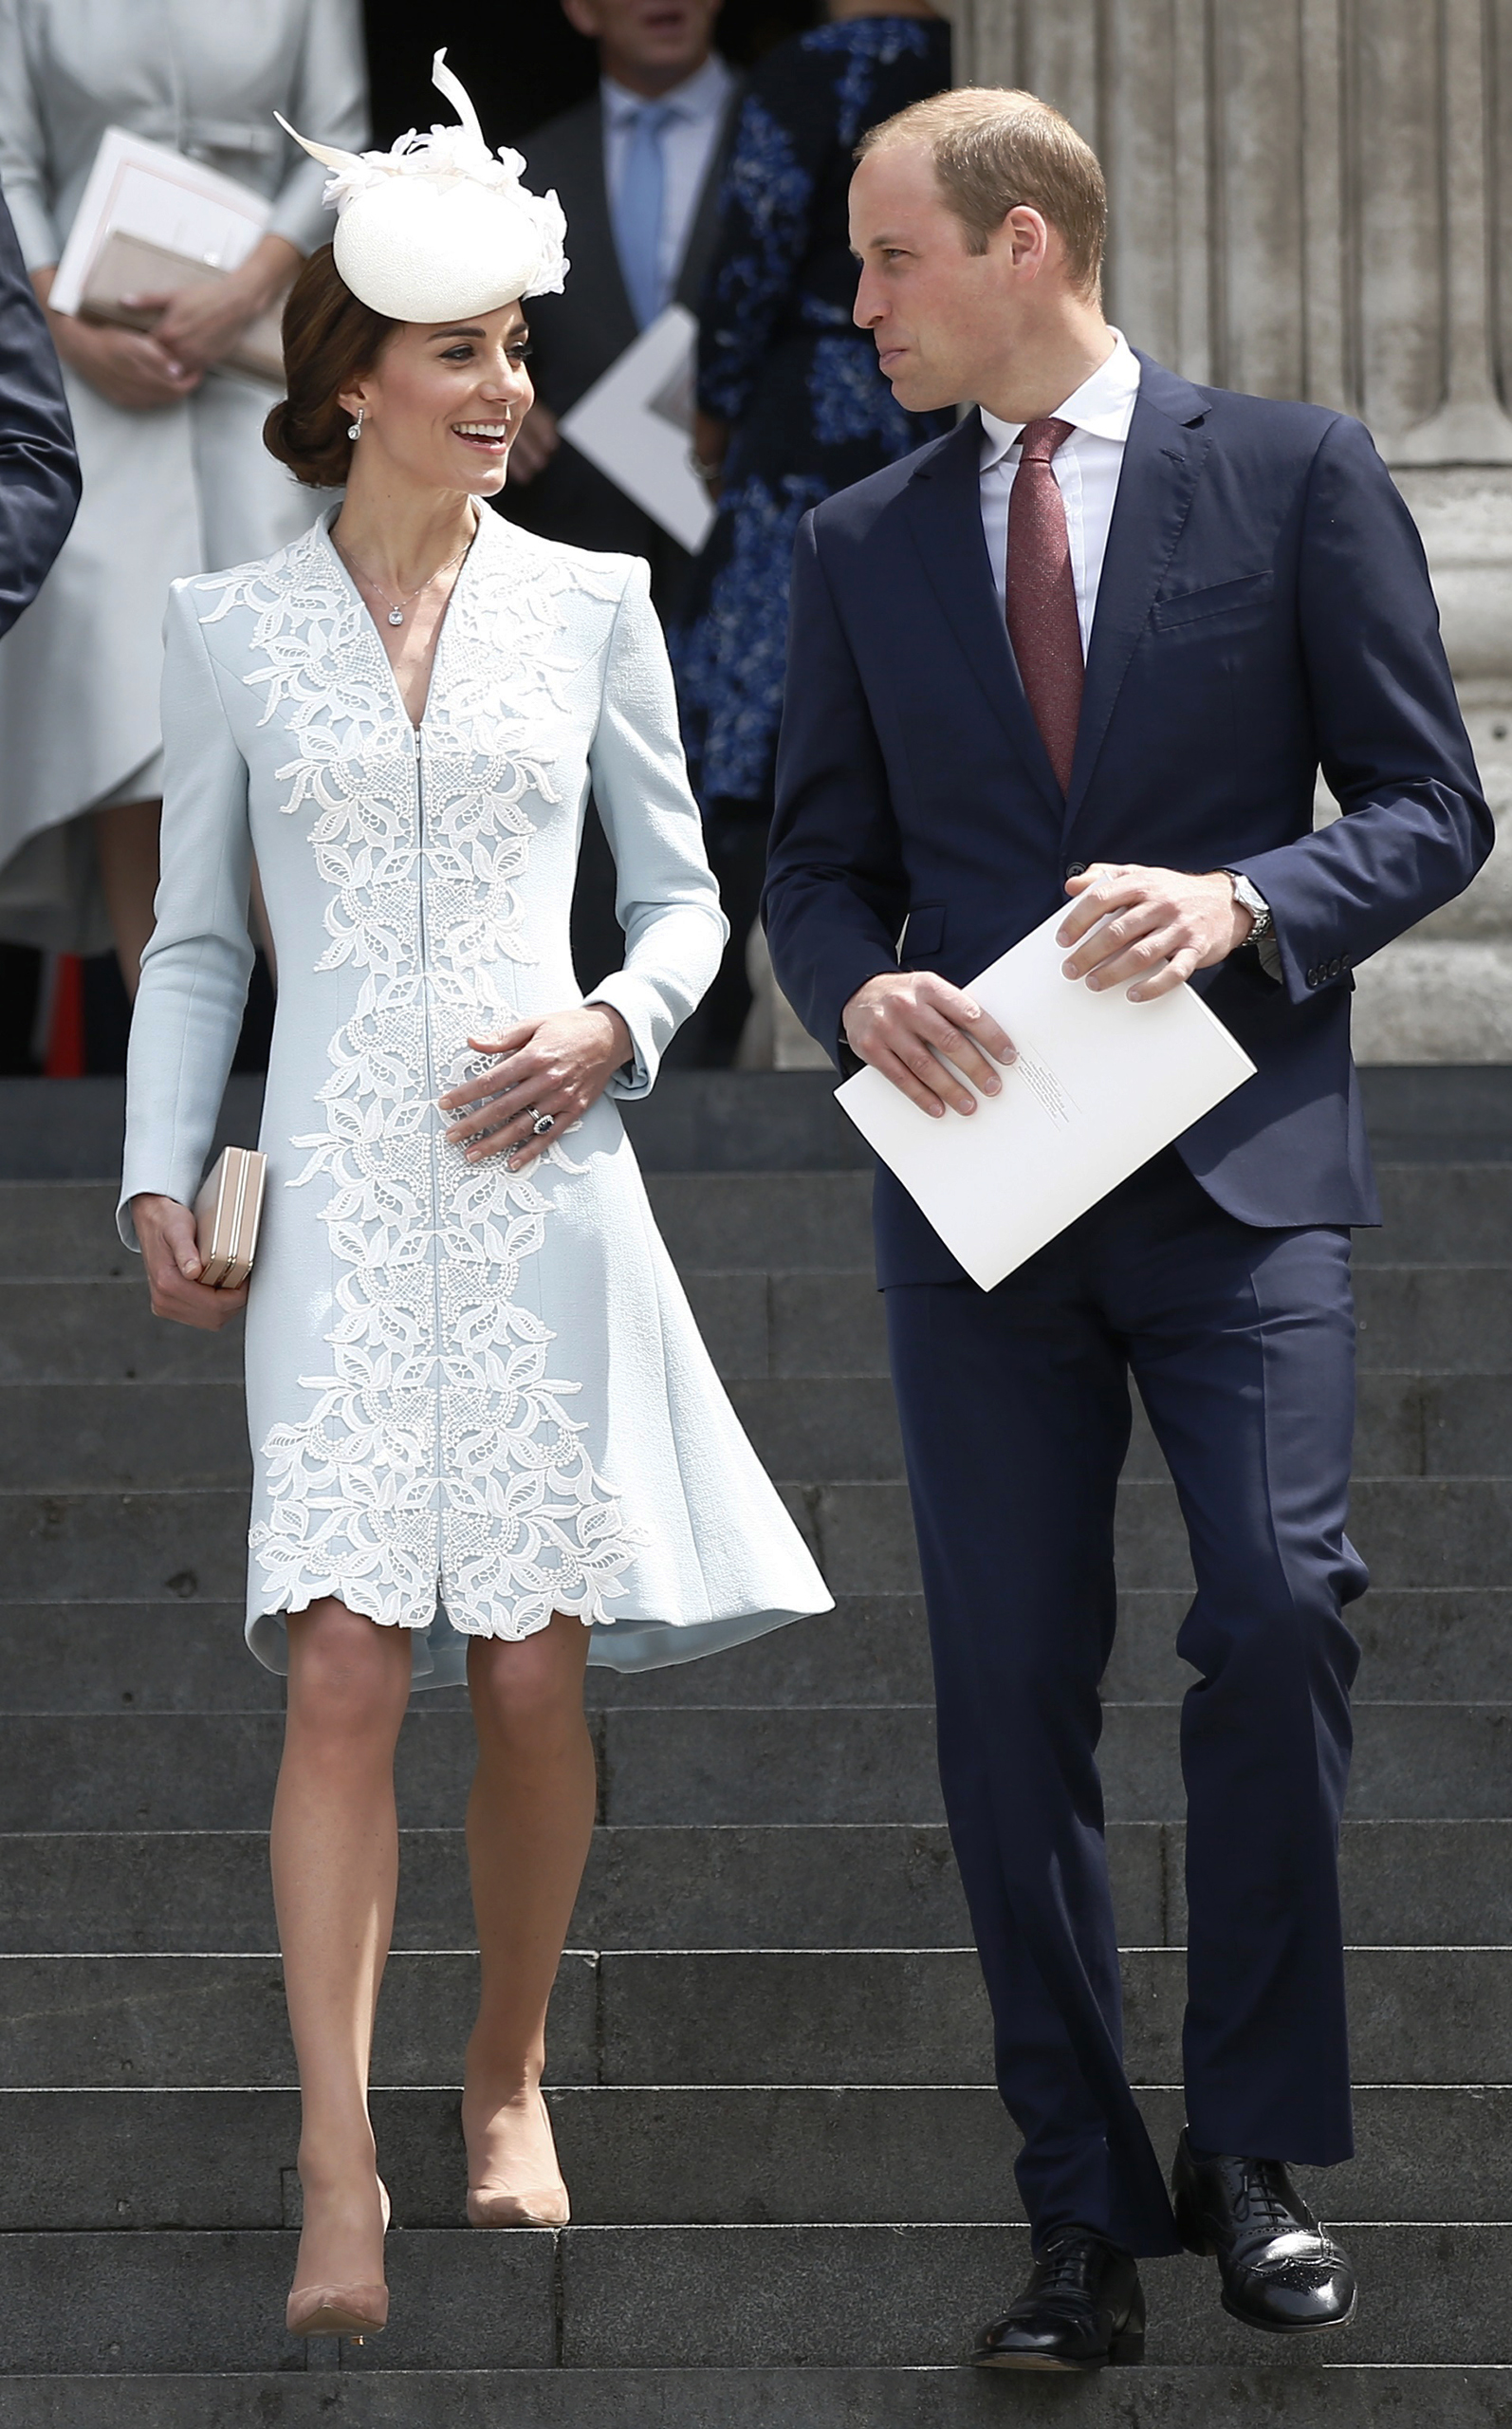 Britain's Prince William and Catherine, Duchess of Cambridge, leave after a service of thanksgiving for Queen Elizabeth's 90th birthday at St. Paul's Cathedral in London, June 10, 2016.